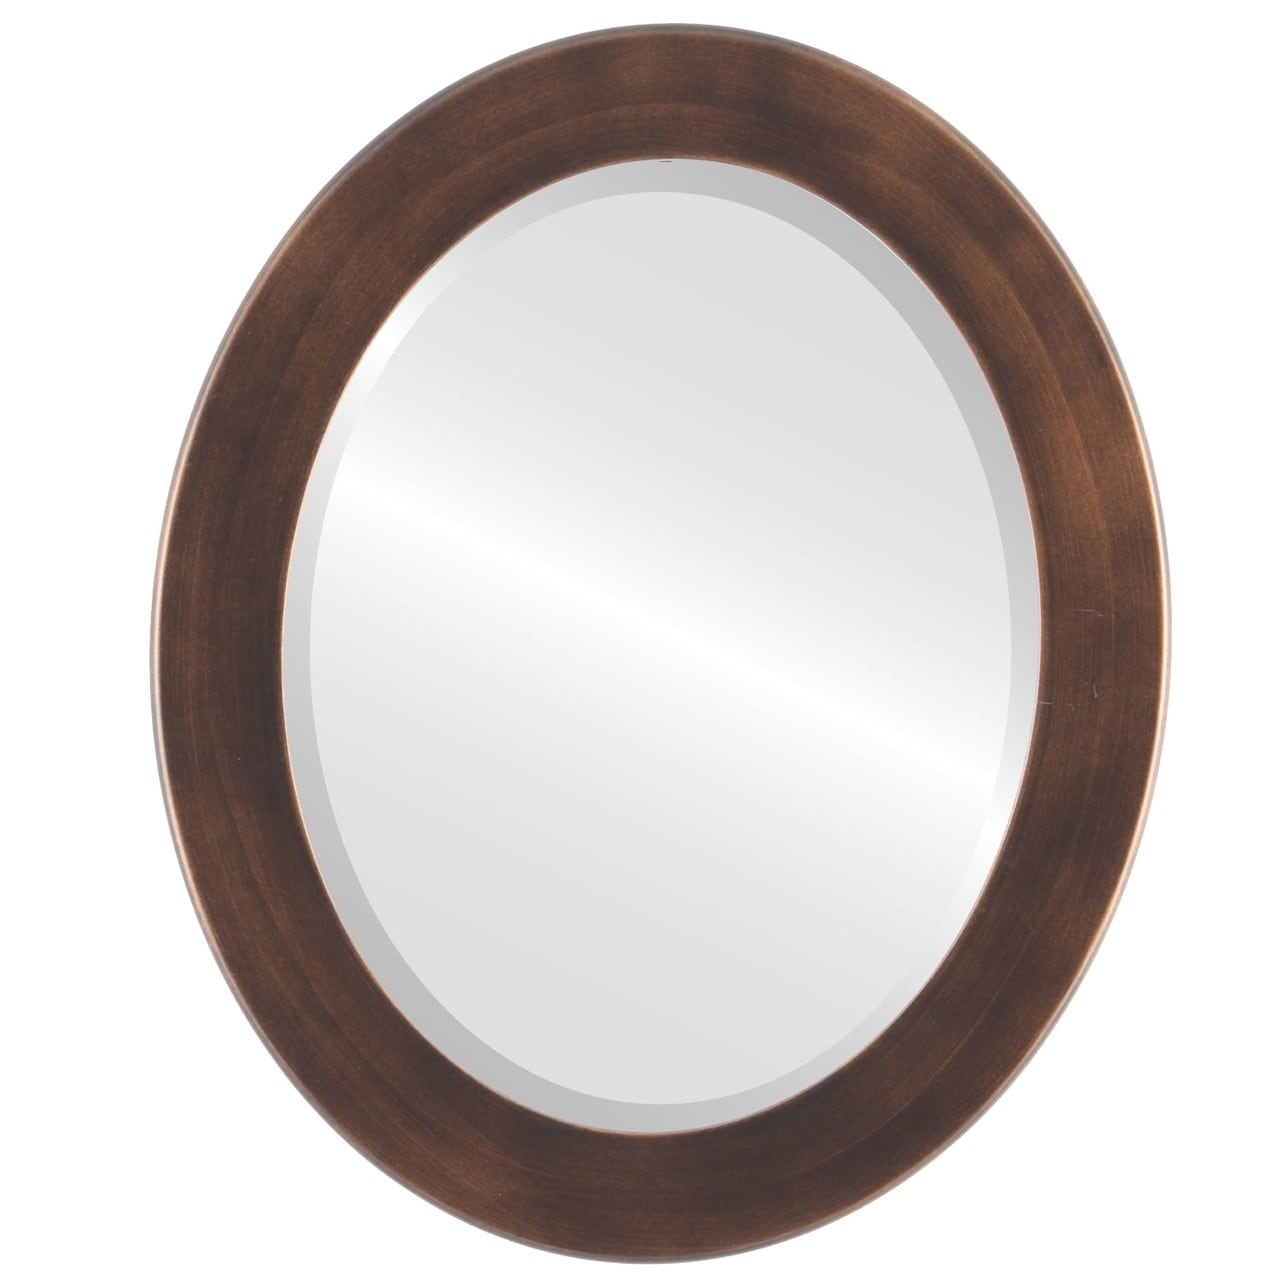 The Oval and Round Mirror Store Avenue Framed Oval Mirror in Rubbed Bronze Antique Bronze by Overstock